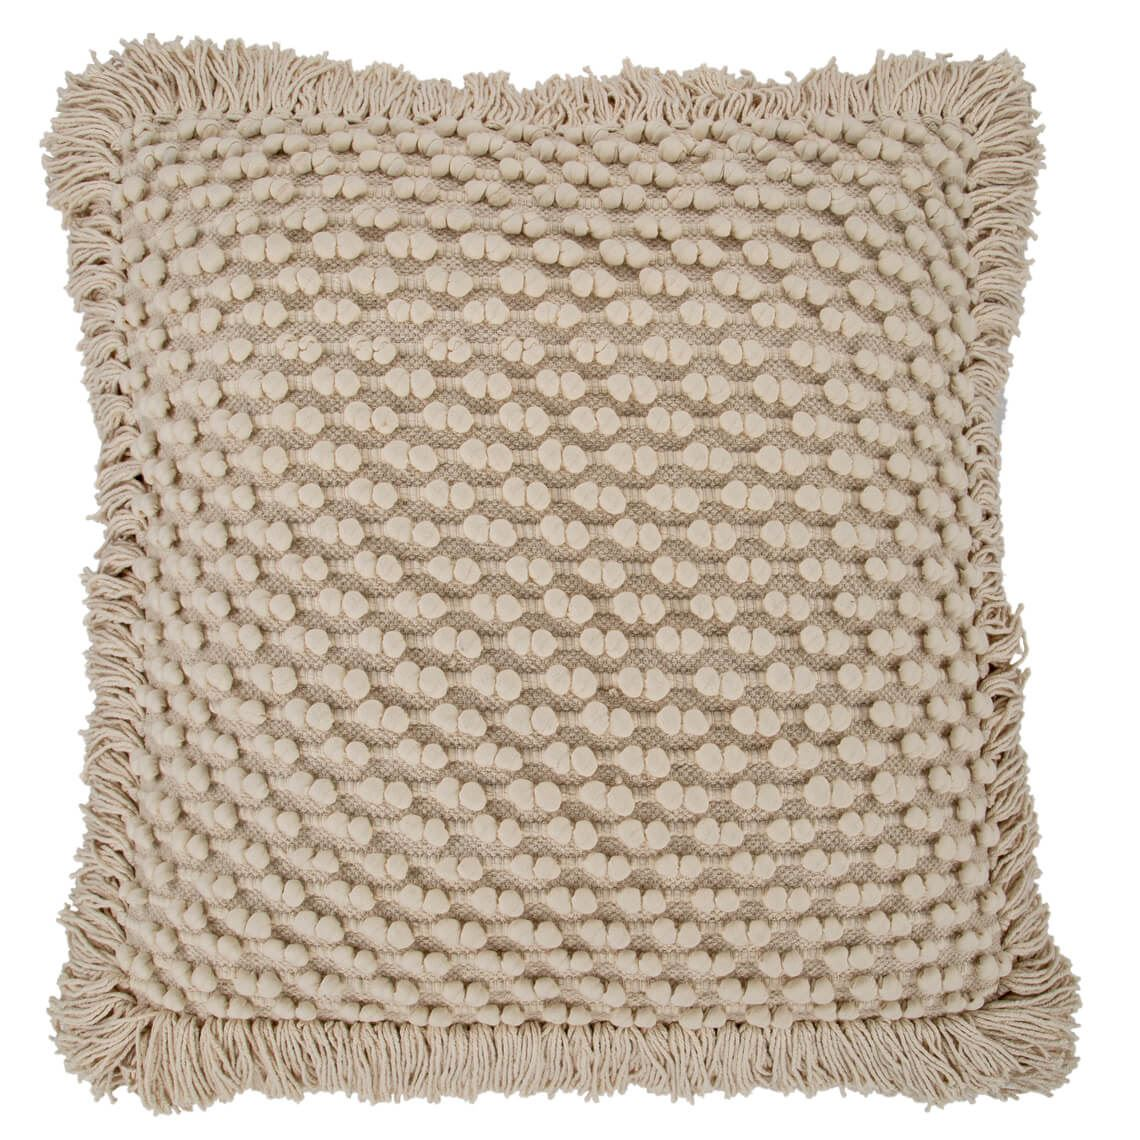 Gabriel Floor Cushion Size W 80cm x D 80cm x H 10cm in Natural Freedom